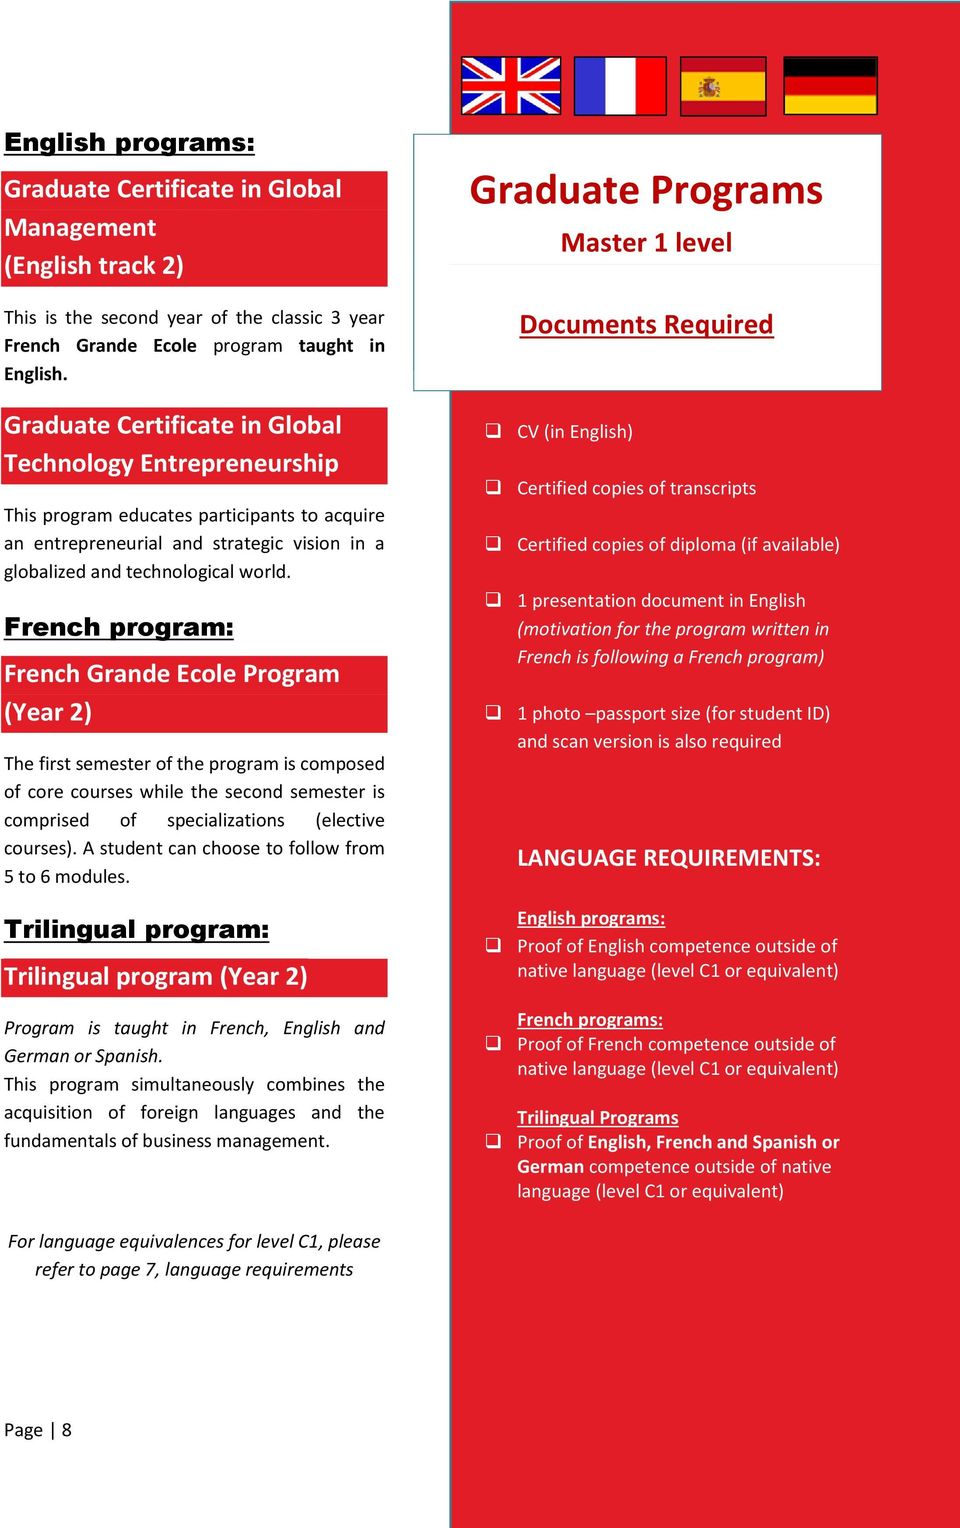 French program: French Grande Ecole (Year 2) The first semester of the program is composed of core courses while the second semester is comprised of specializations (elective courses).